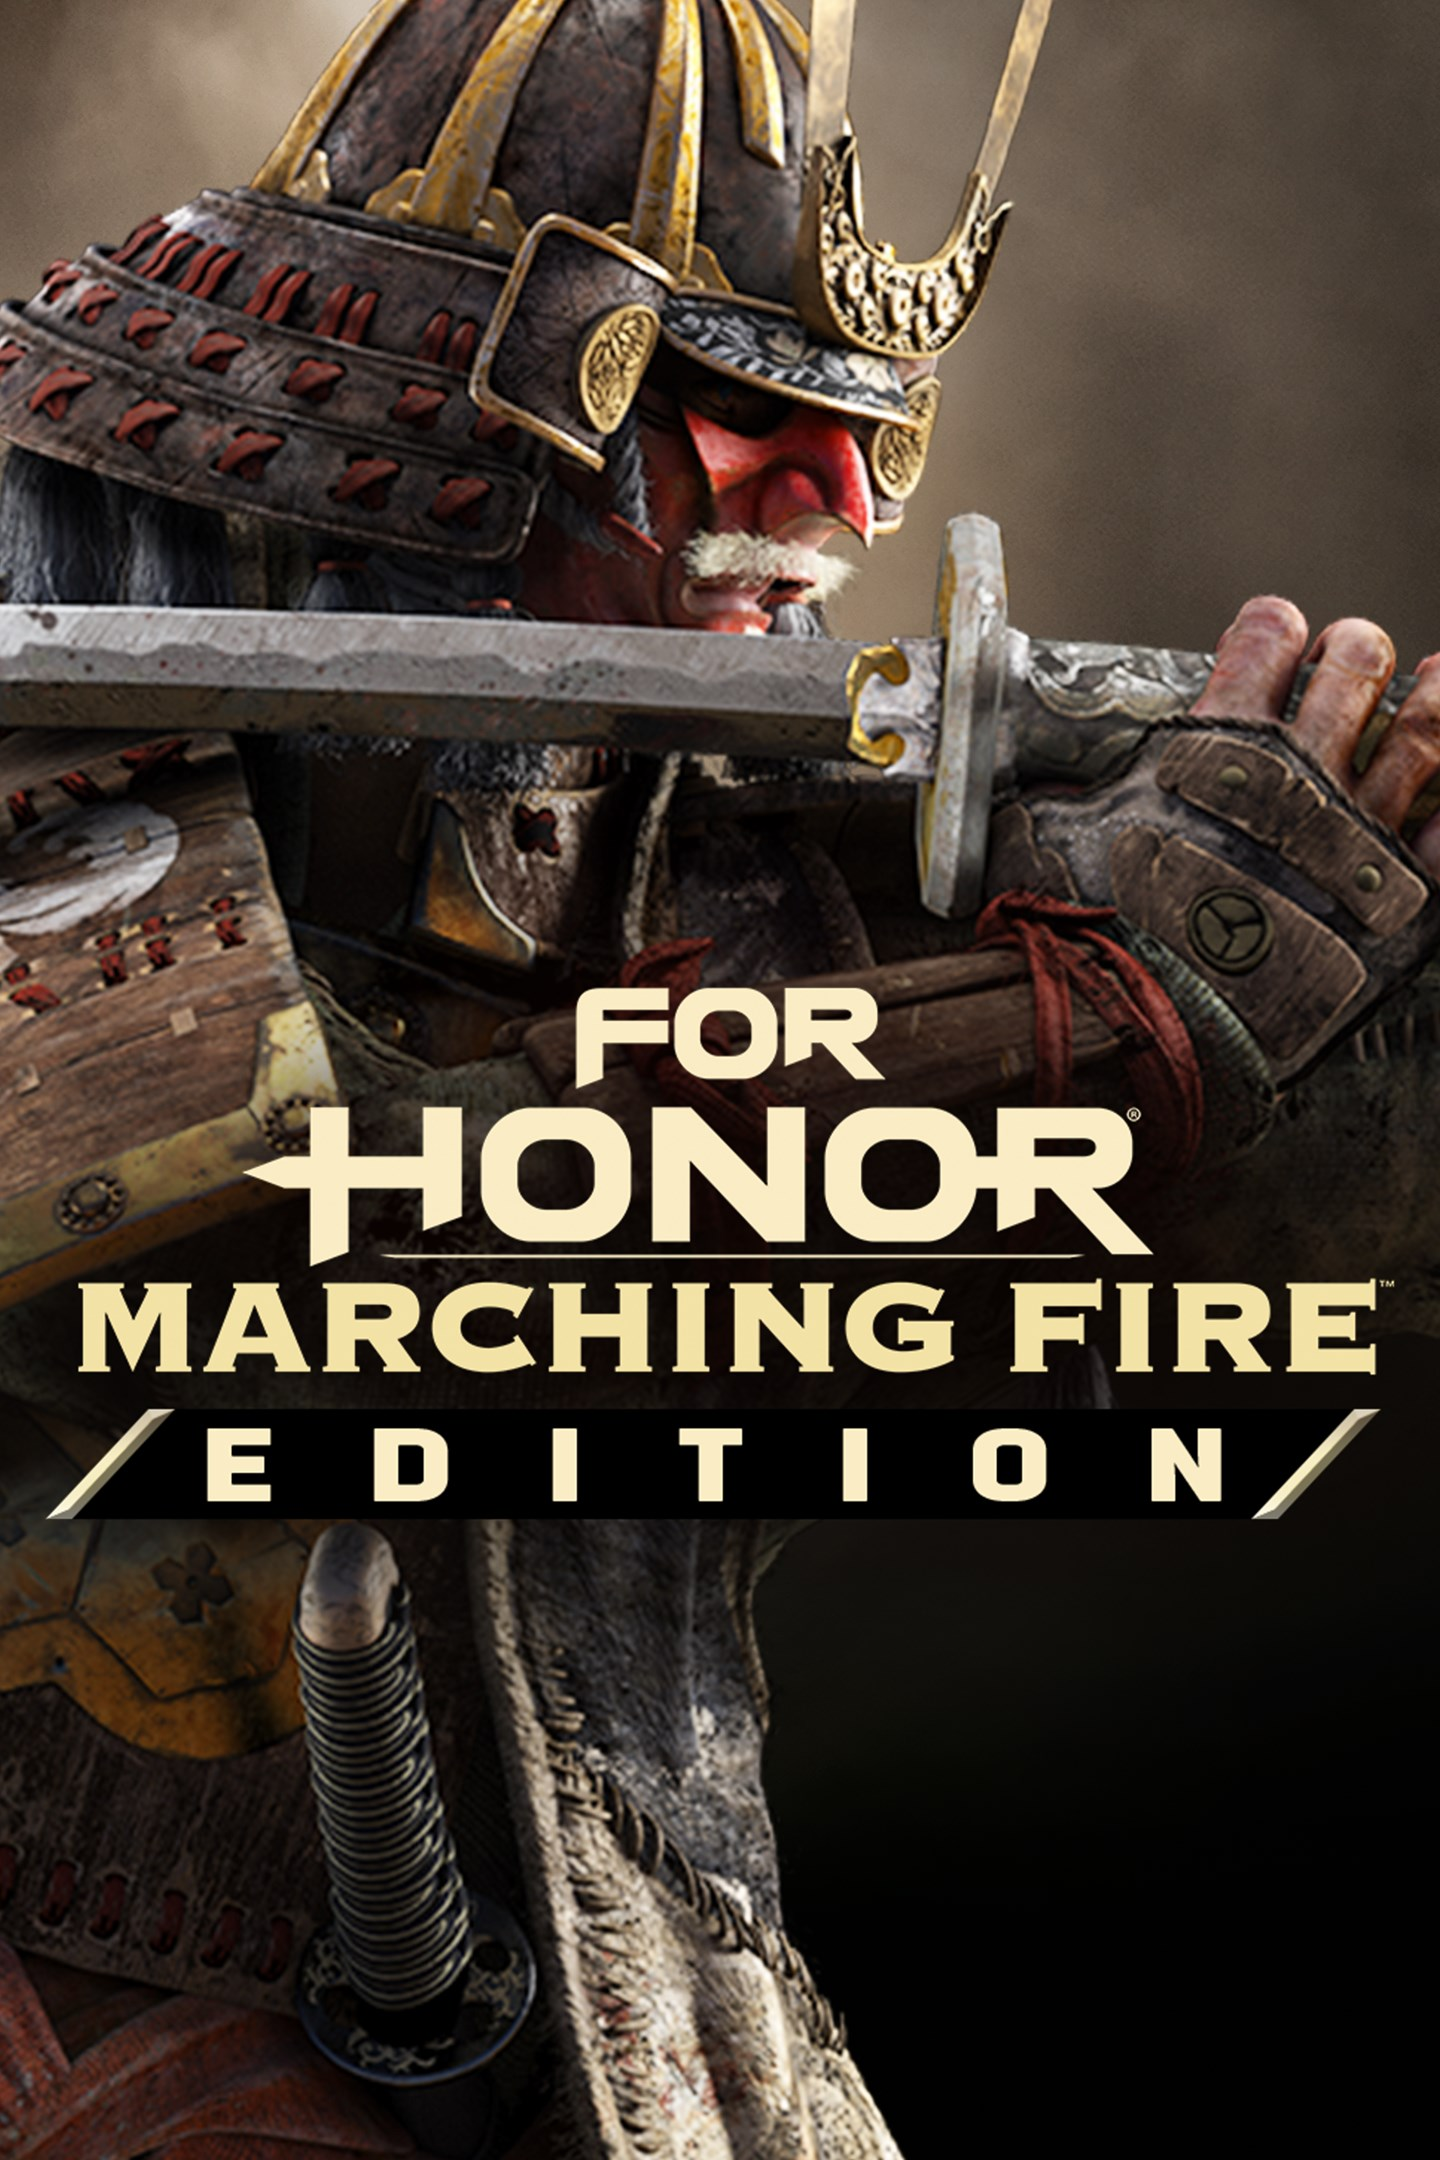 Buy FOR HONOR : MARCHING FIRE EDITION - Microsoft Store